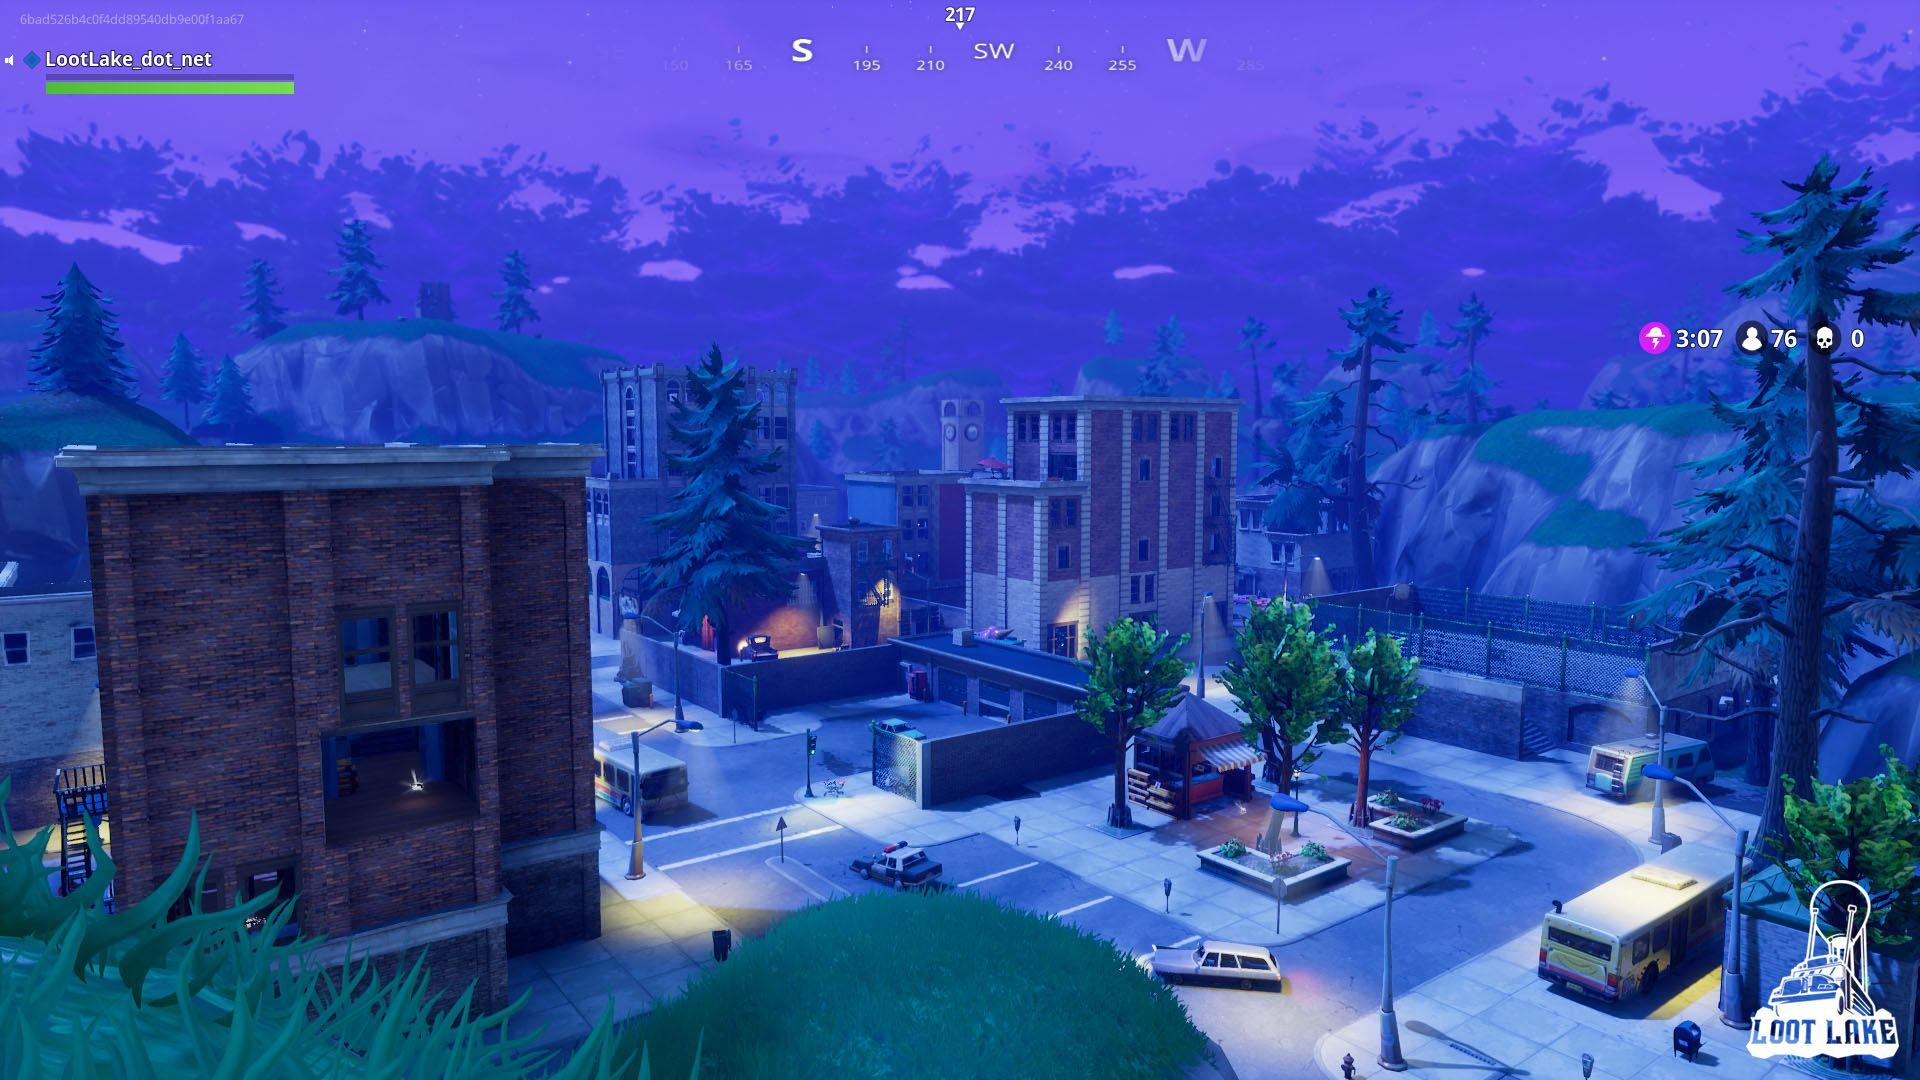 Tilted Towers - Loot Lake